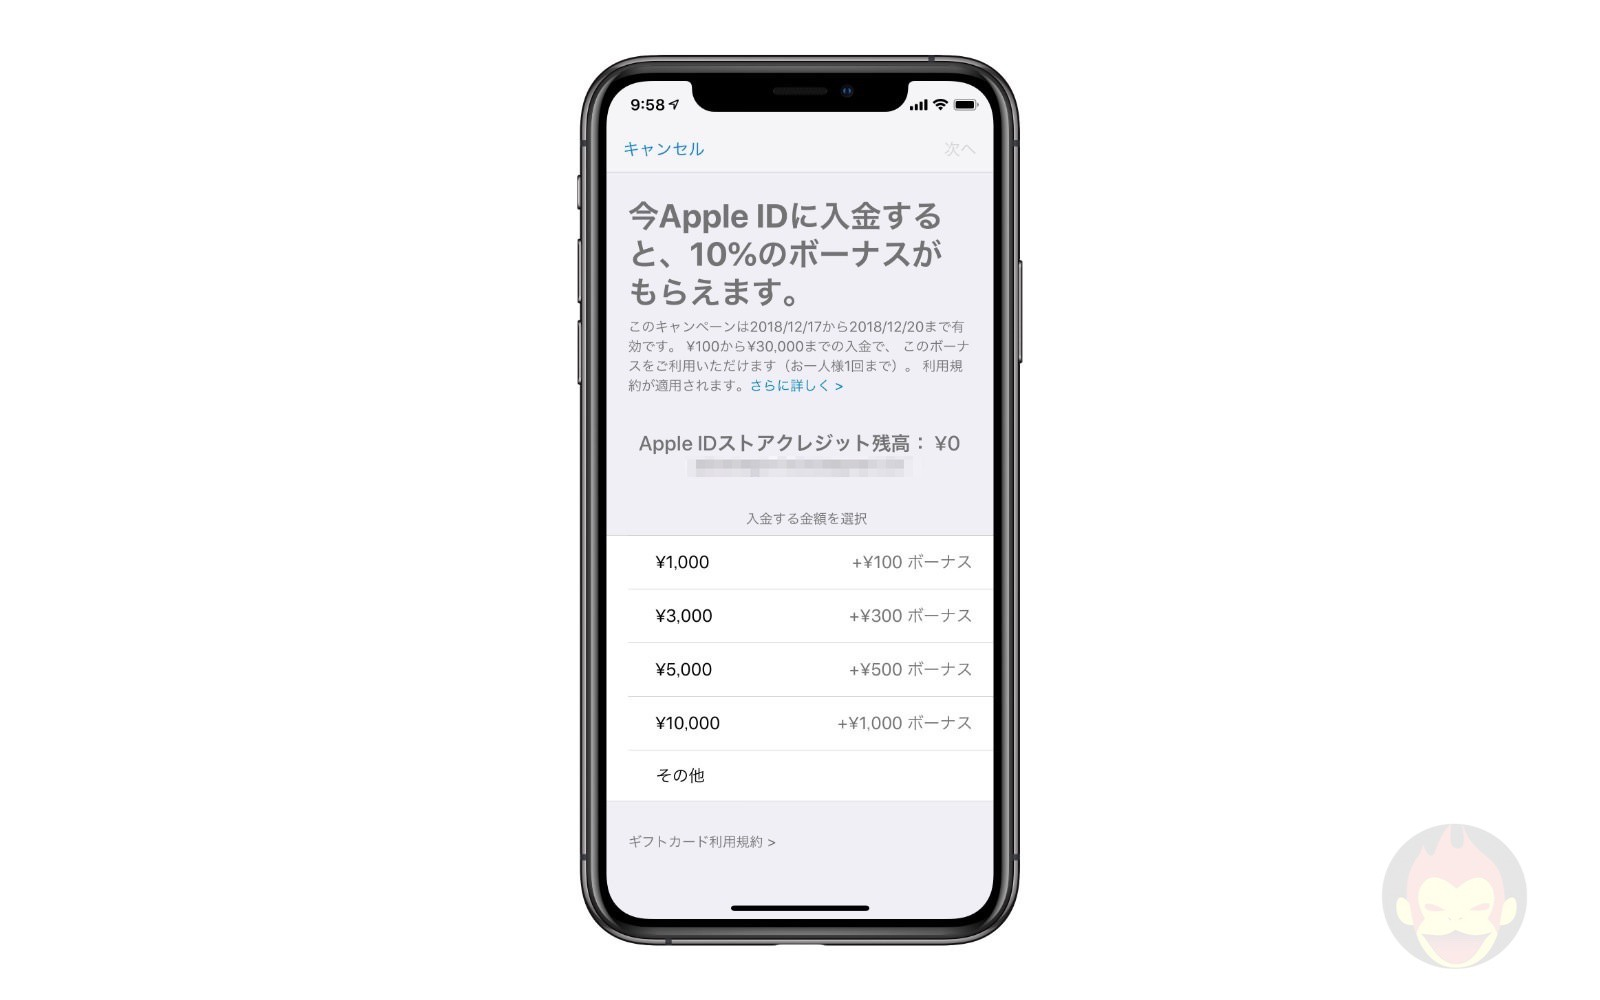 Apple ID Bonus 01